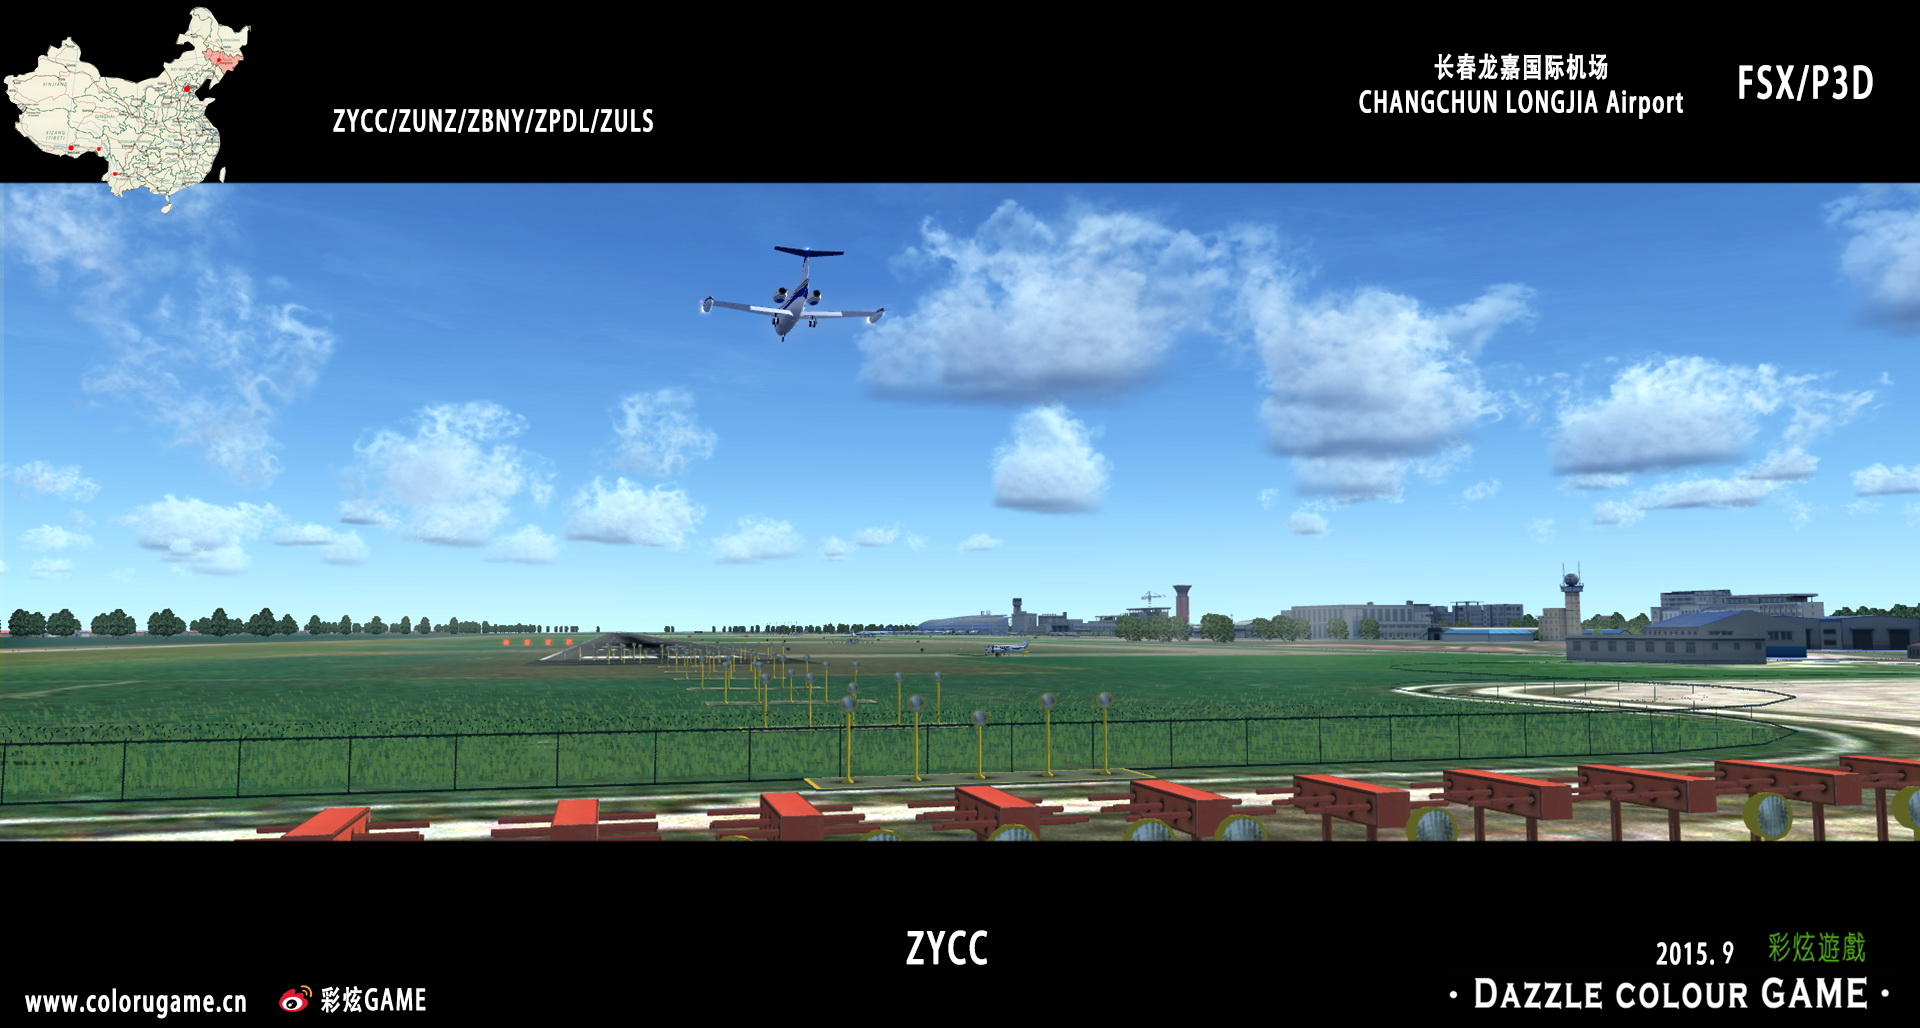 DAZZLE COLOUR GAME - CHANGCHUN LONGJIA AIRPORT ZYCC FSX P3D